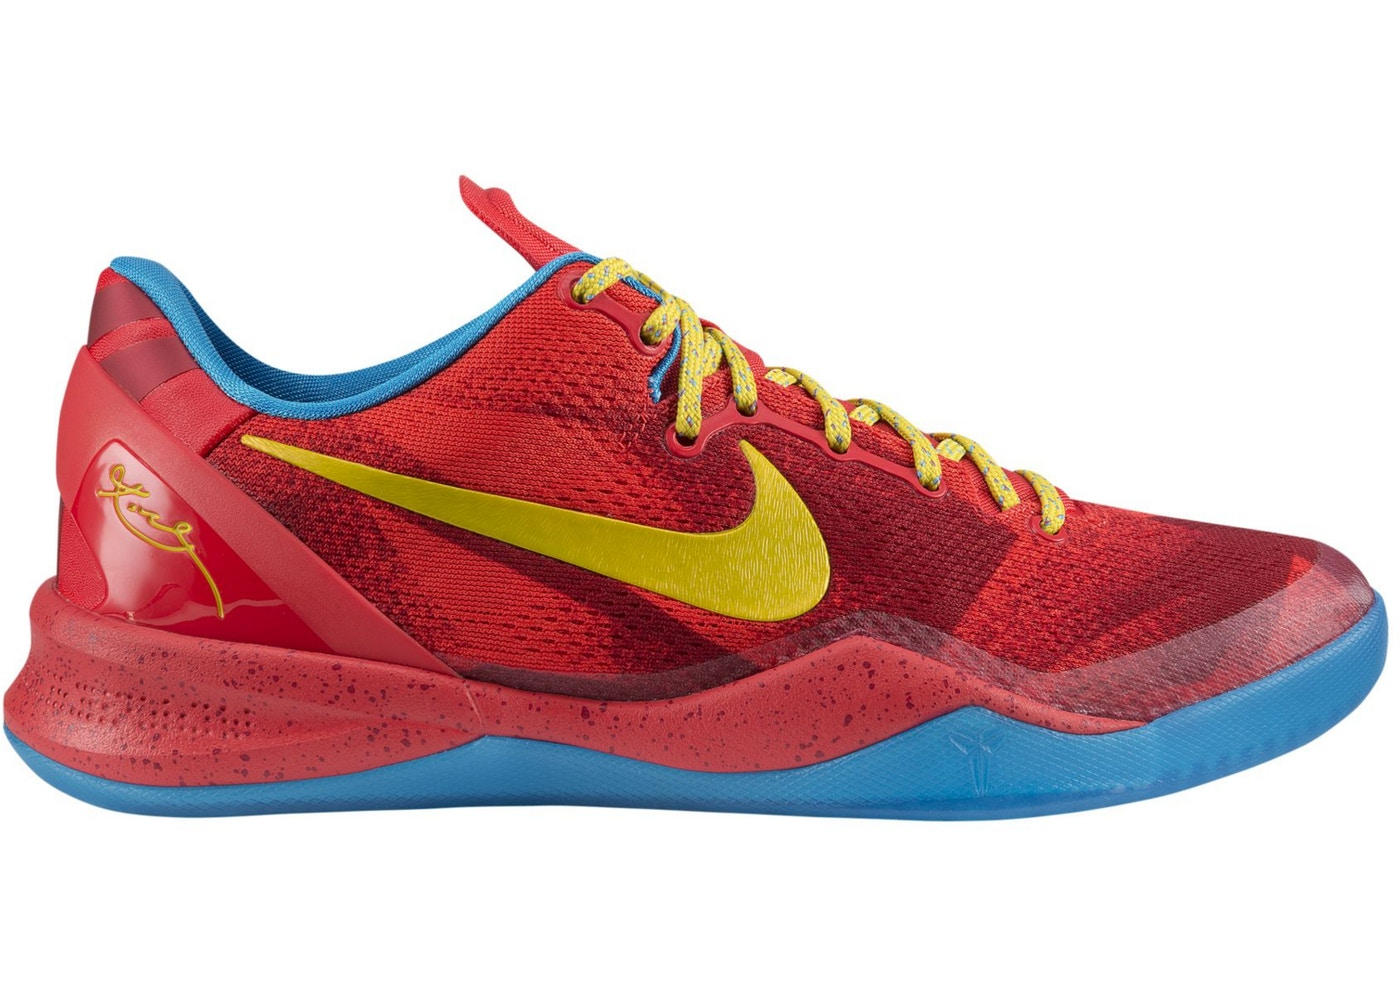 sports shoes 107a4 ab636 Kobe 8 Year of the Horse